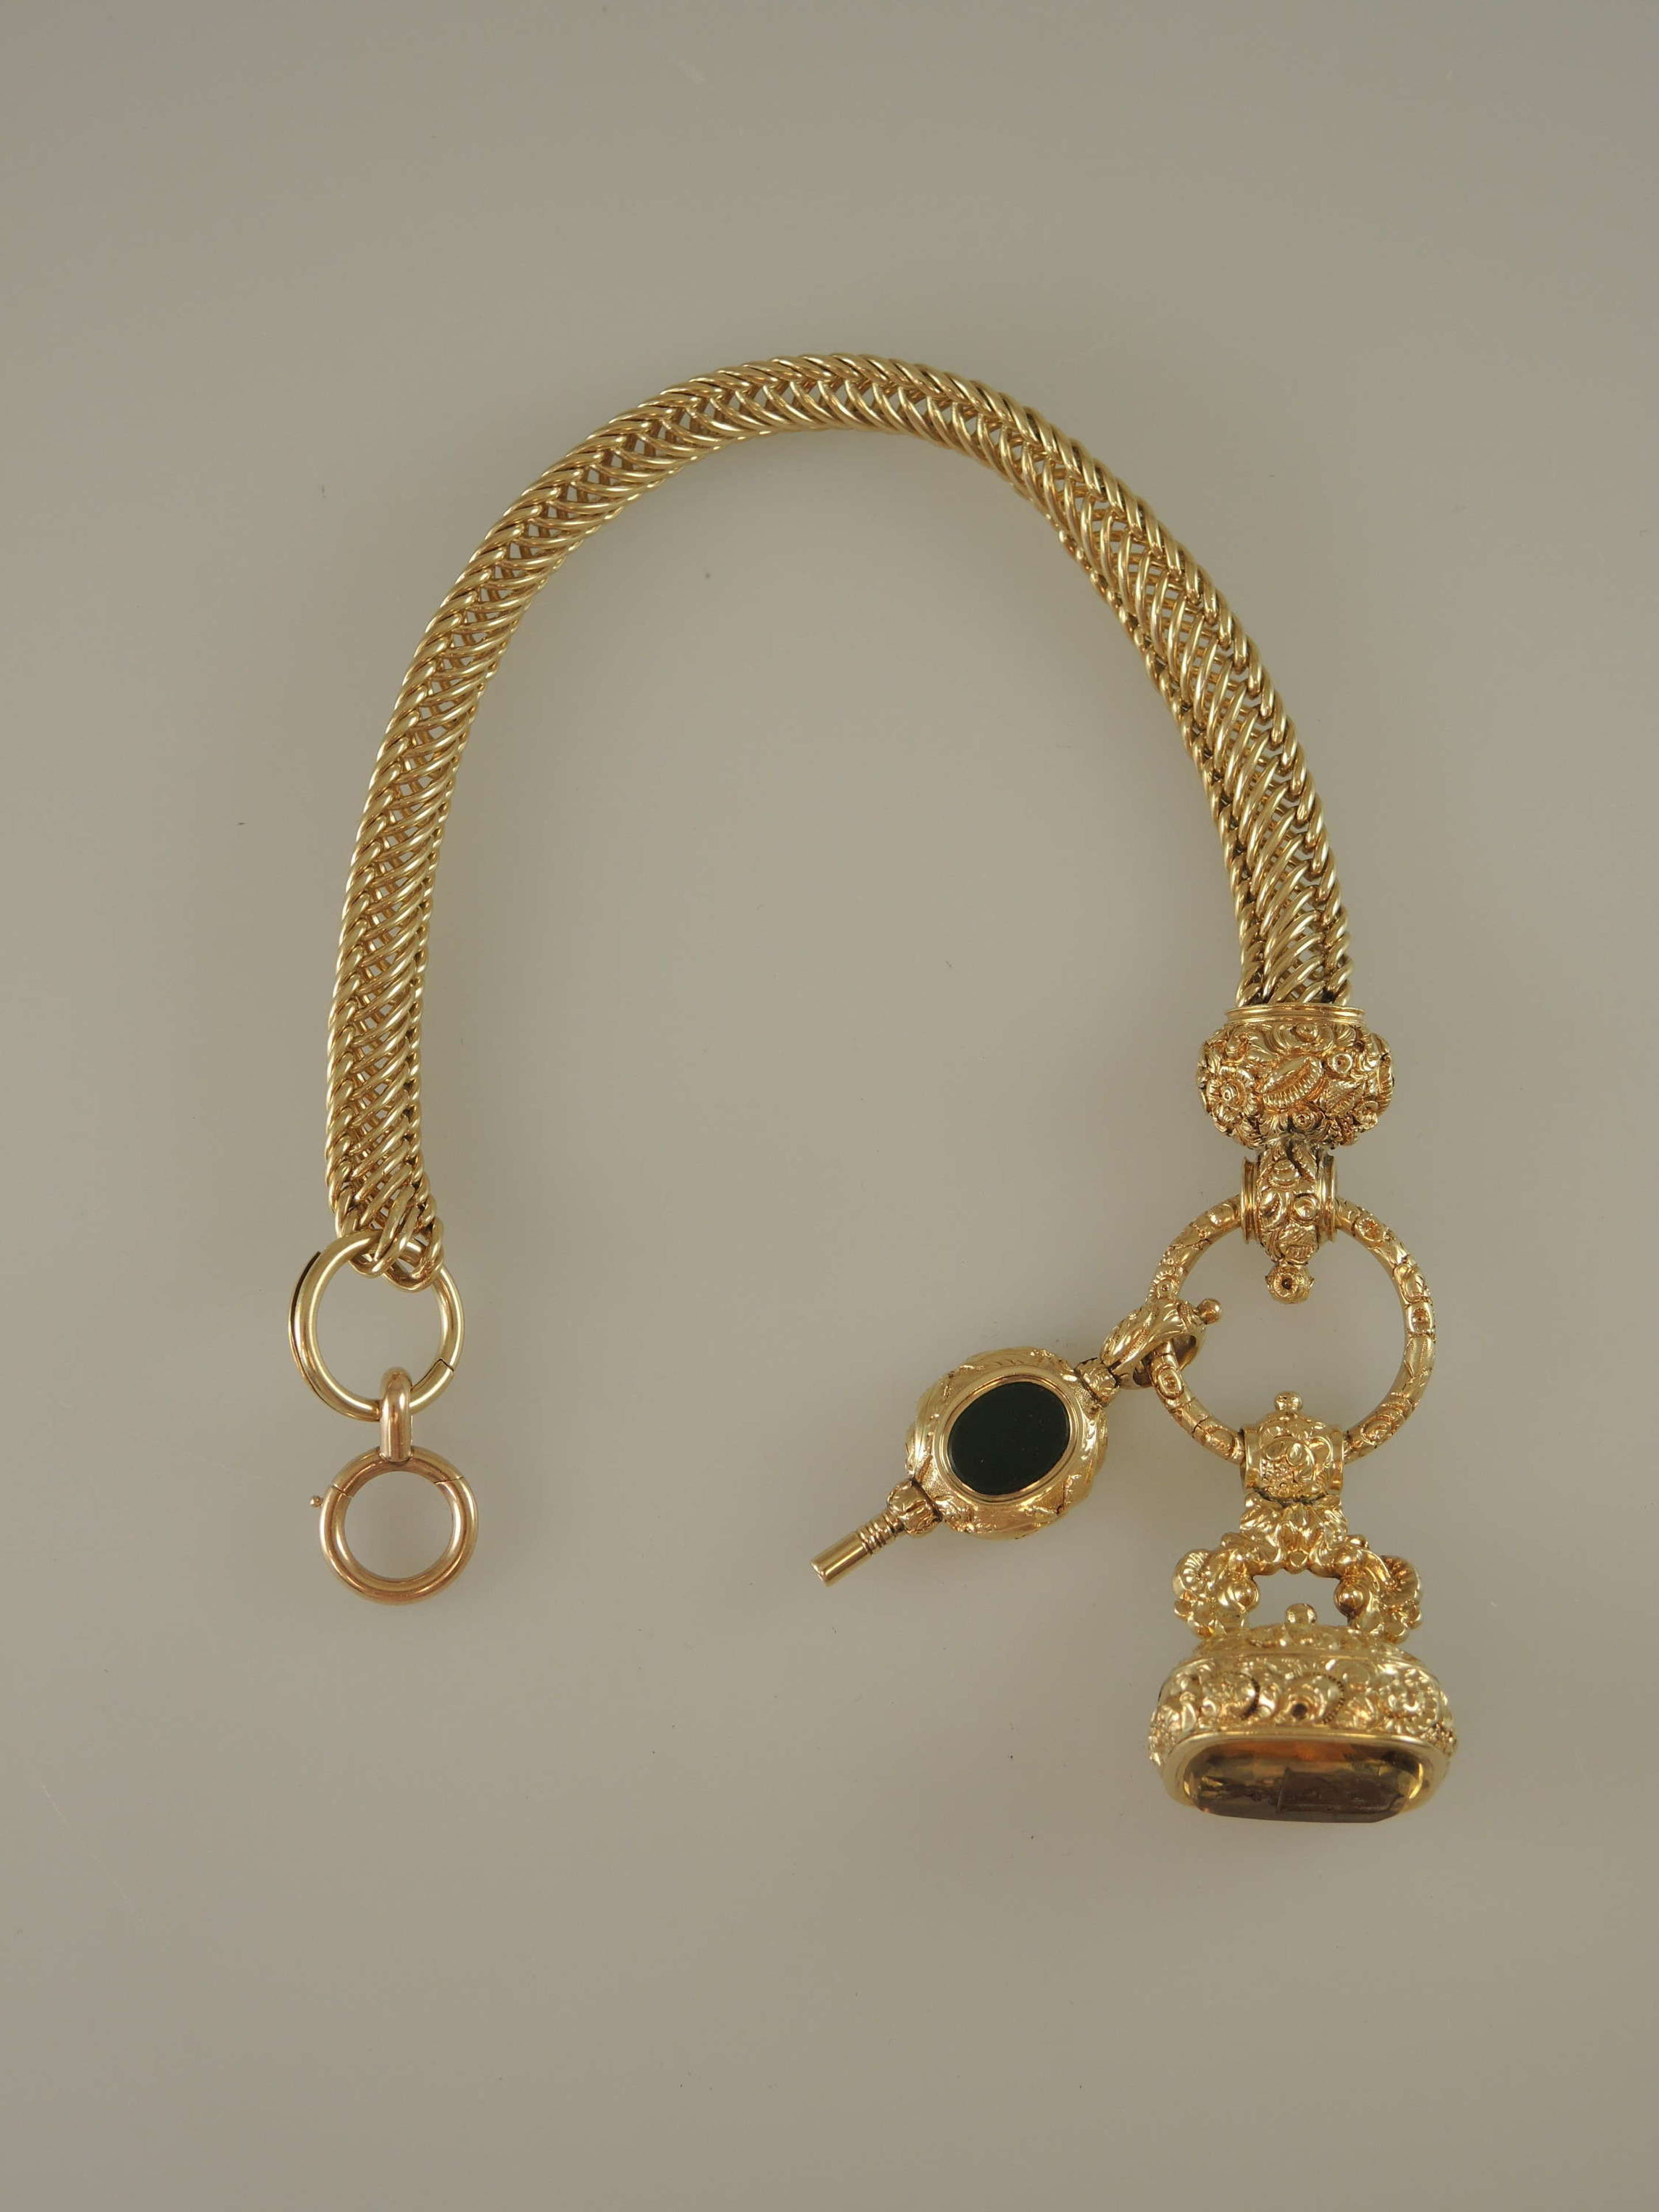 Magnificent 18K Gold watch chain with key and intaglio seal c1850